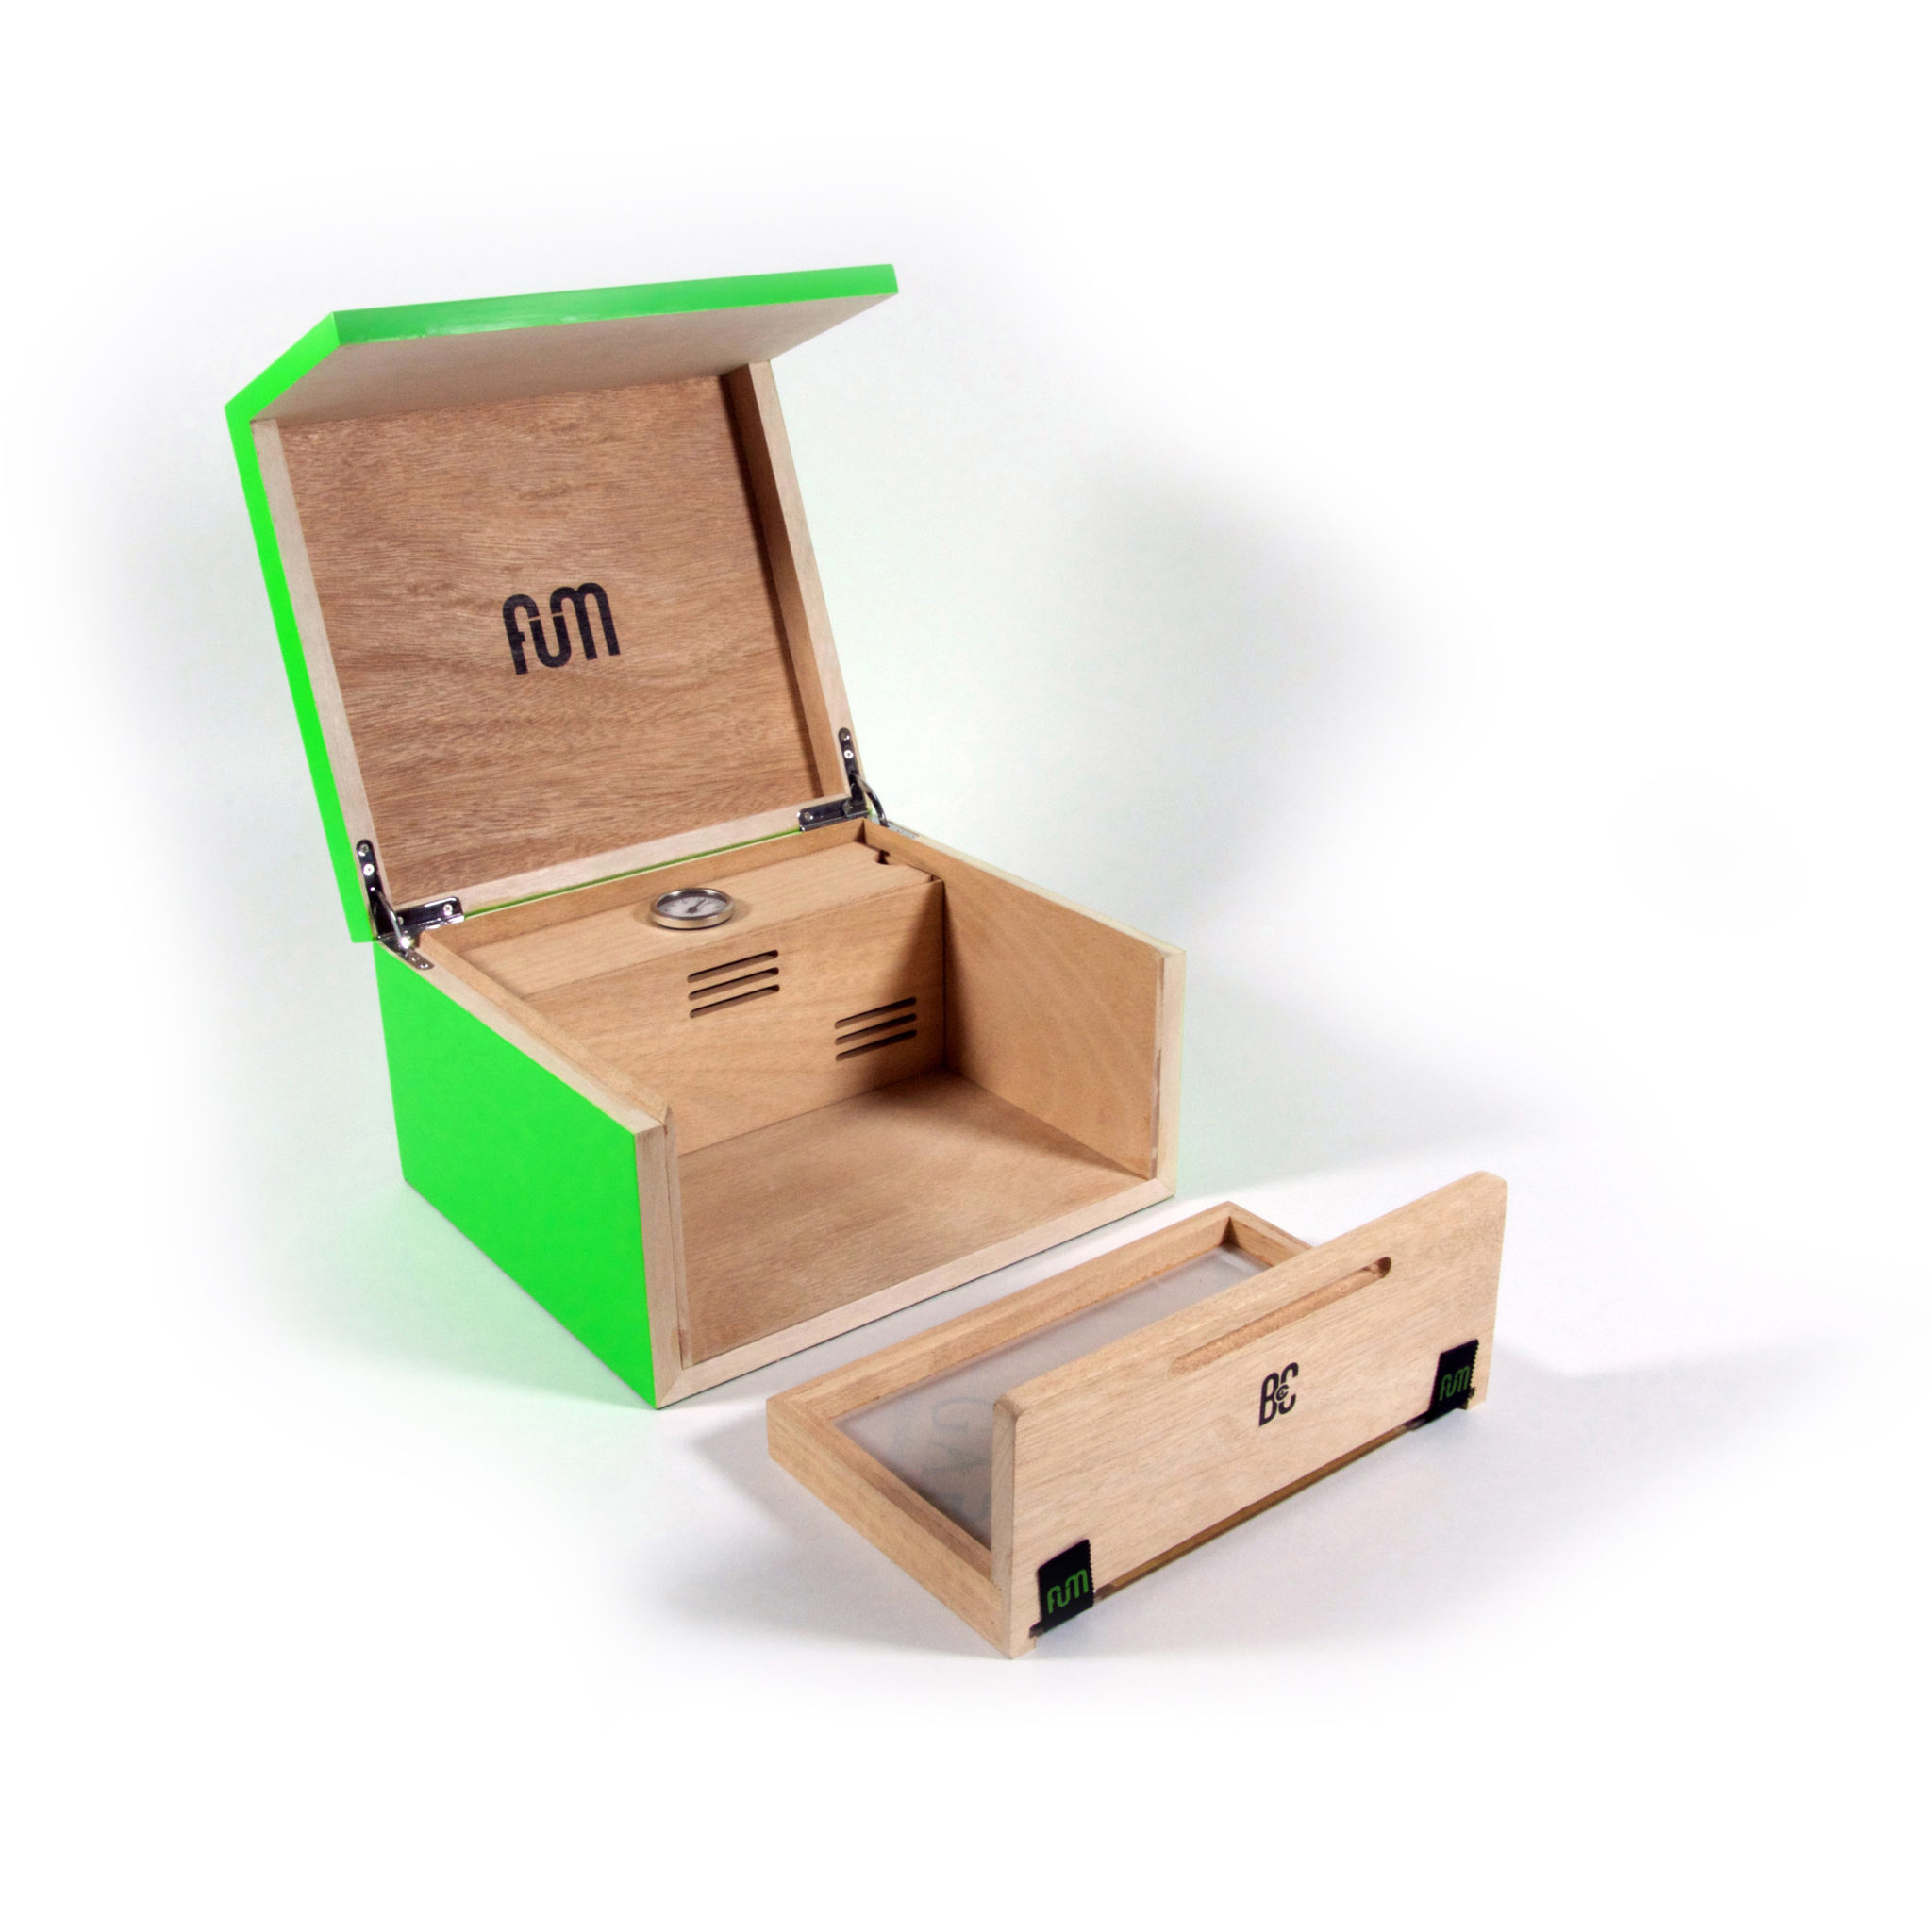 Green small B4CC is a solid okume wood desktop humidor specially designed for keeping the green in optimum conditions due to its hermetic seal and interior humidity circulation system.